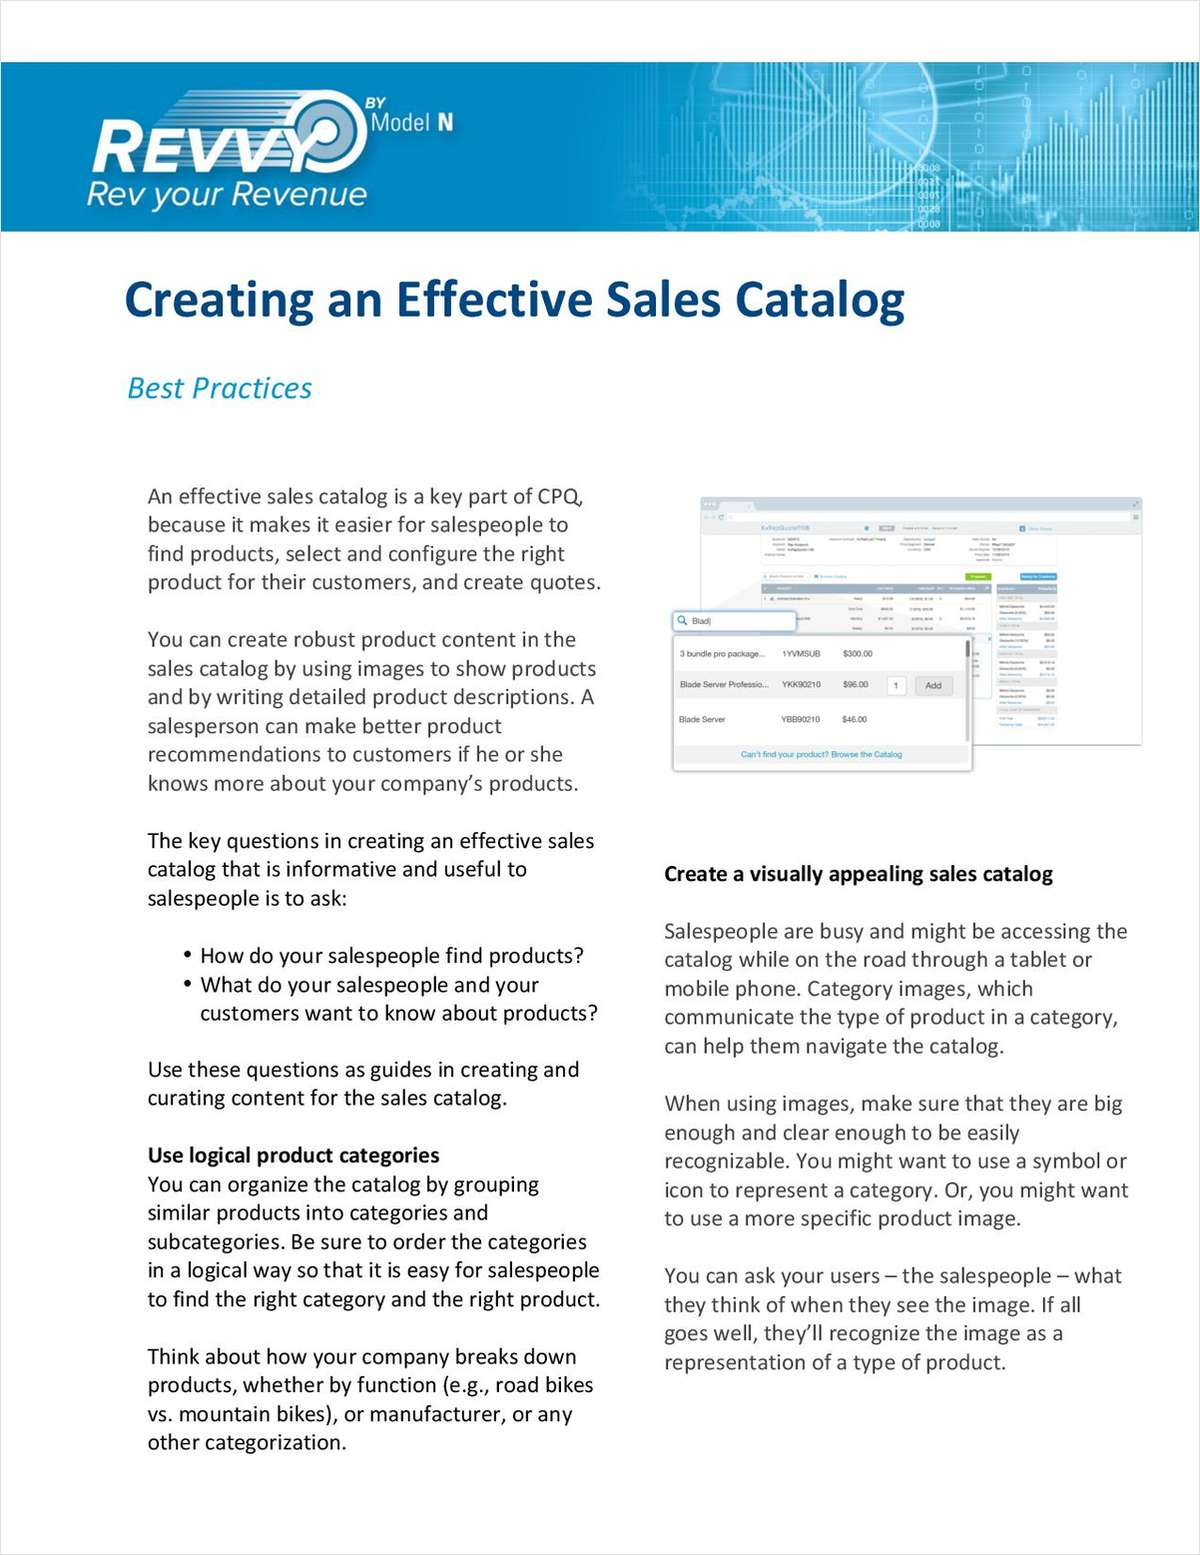 Creating an Effective Sales Catalog